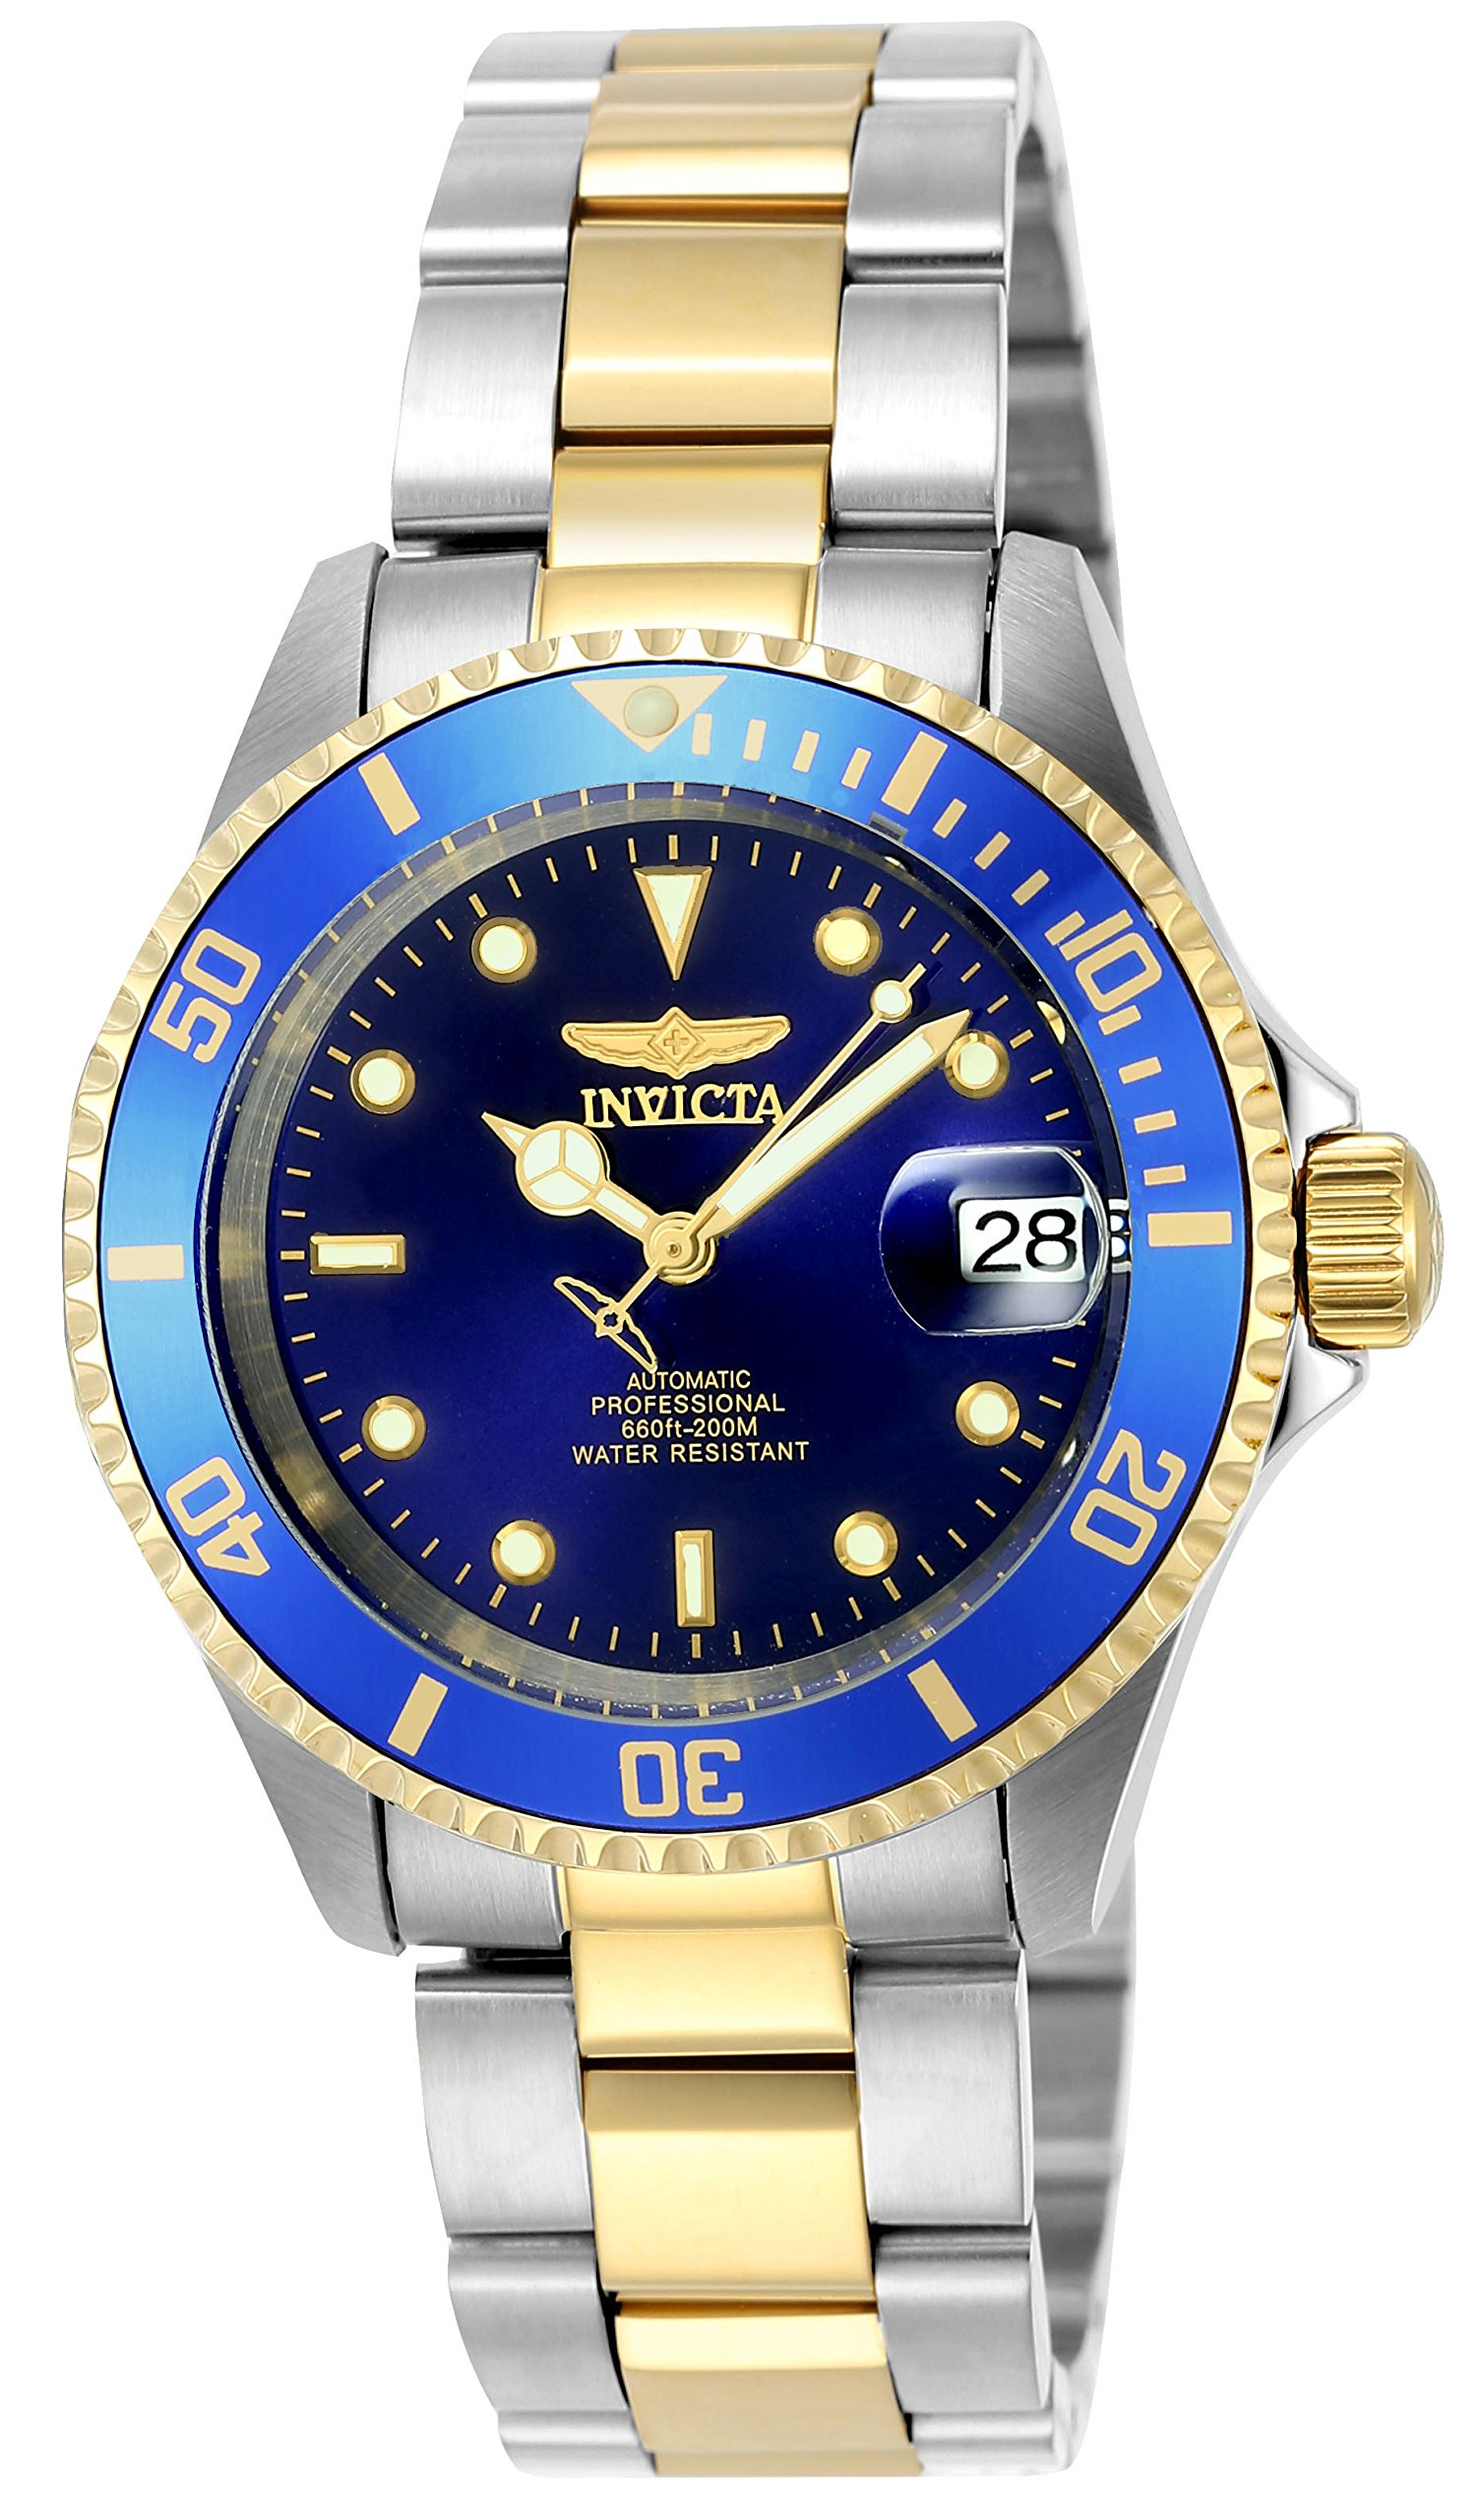 Invicta Pro-Diver Analog Blue Dial Men's Watch-8928OB